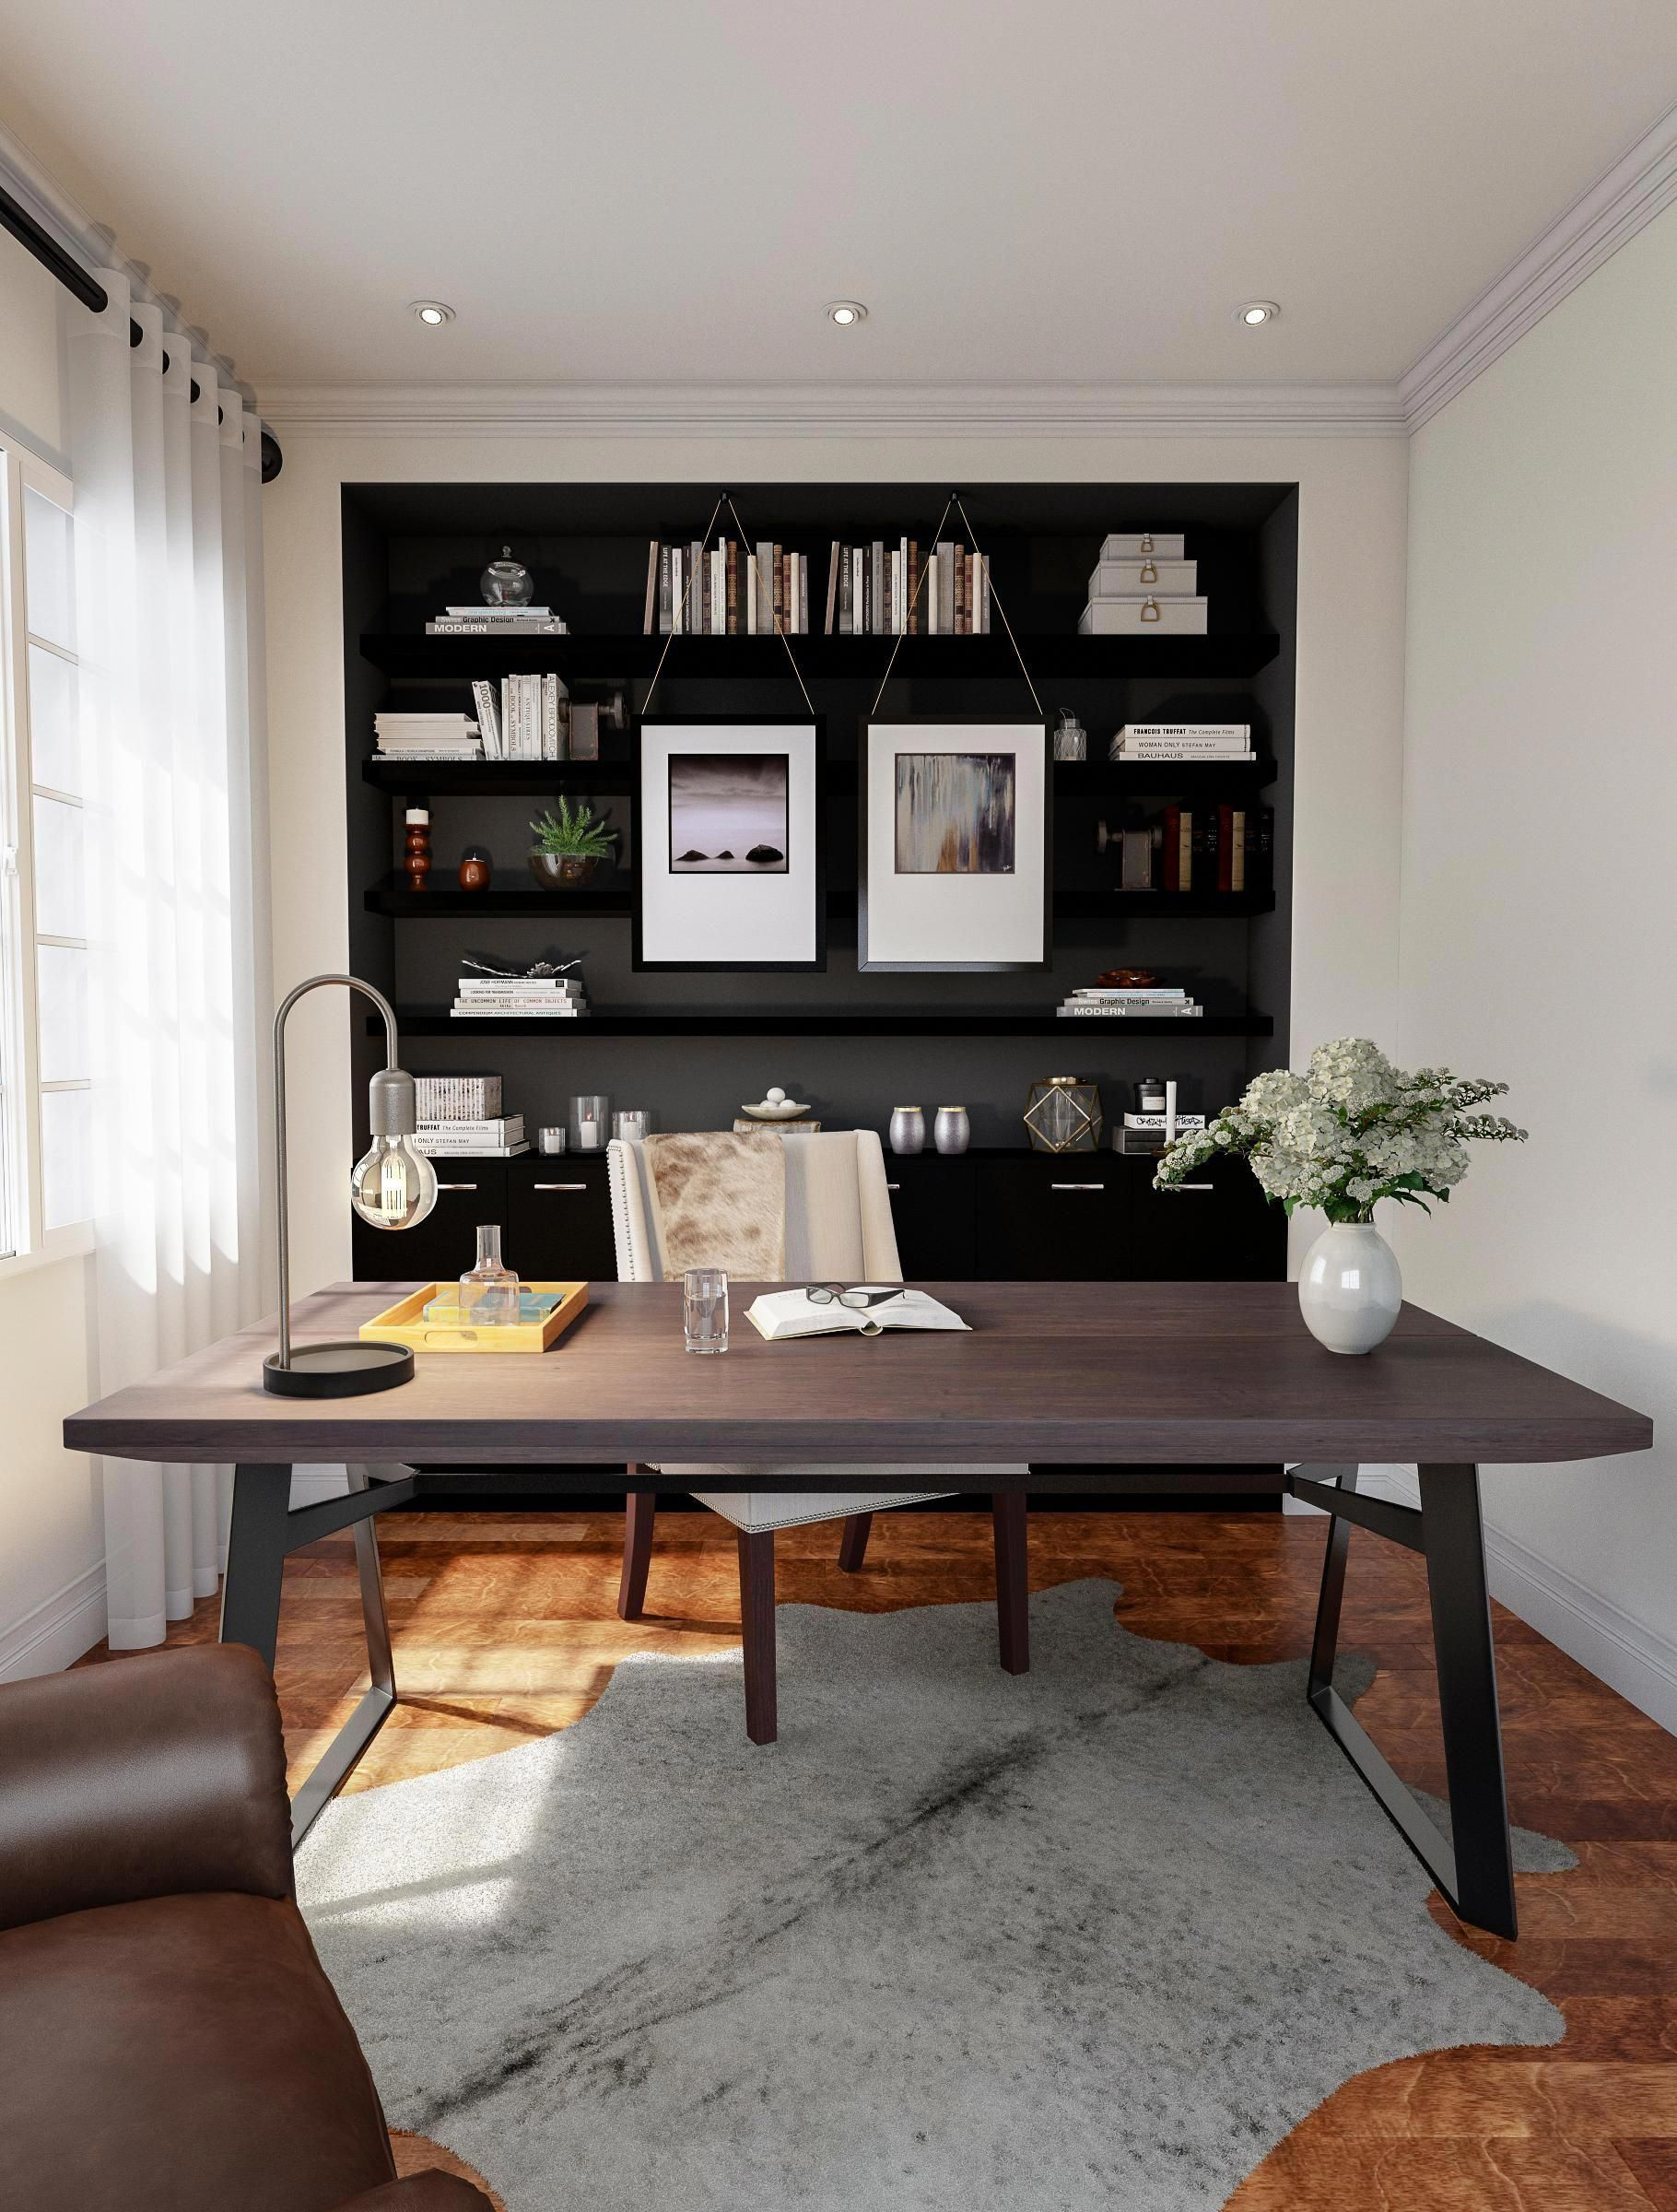 Creative Office Design Home And Decor Ideas For Decorating My